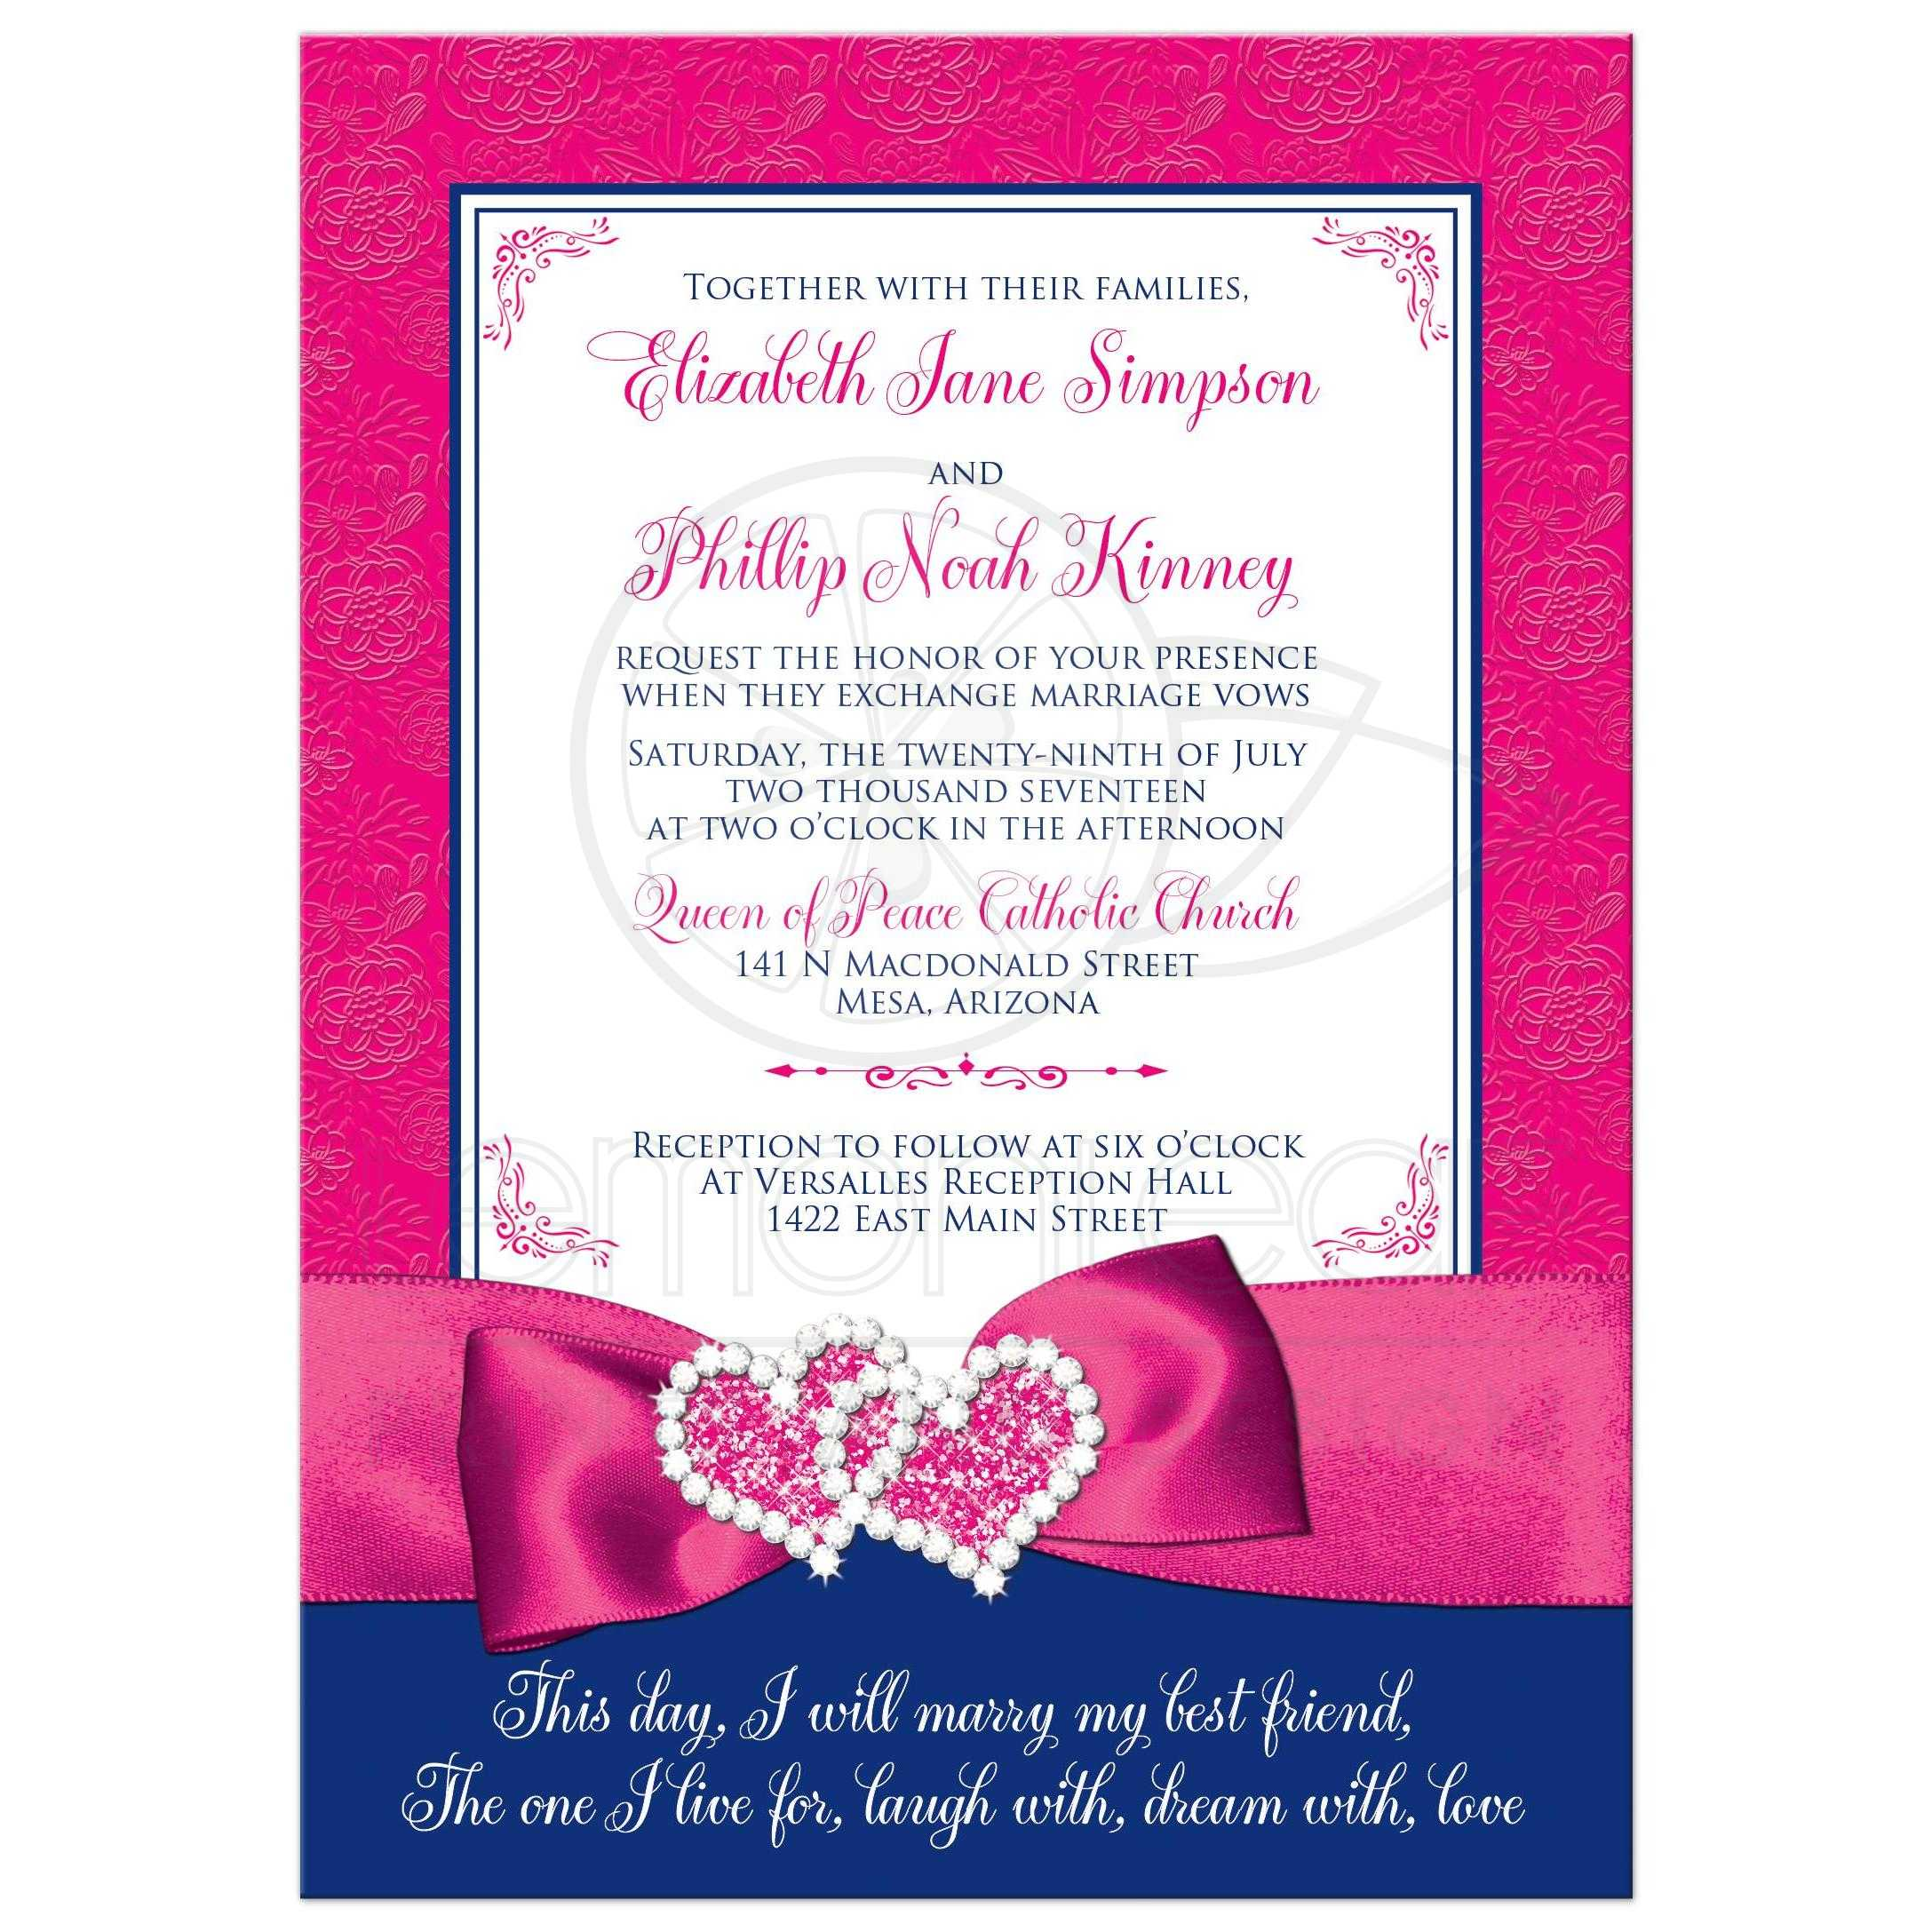 Wedding invitation royal blue pink white floral printed ribbon royal blue pink and white floral pattern wedding invitations with ribbon stopboris Image collections